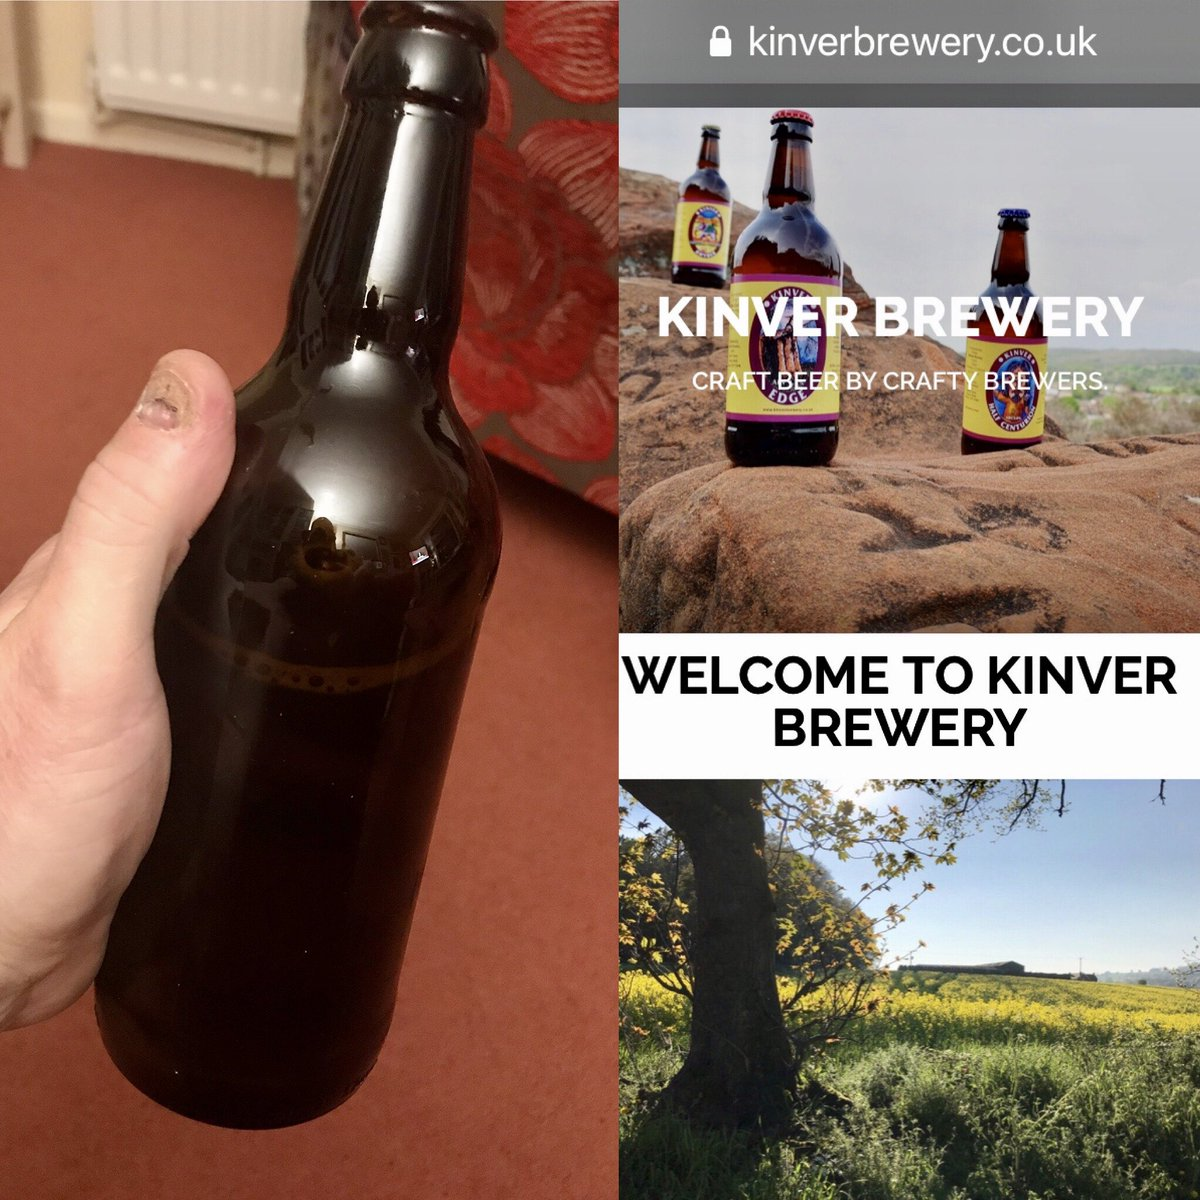 """To celebrate their 16th Anniversary of #brewing #beer @KinverBrewery has produced """"Sweet Sixteen"""" a 4.7% Pale 🍺 using Citra hops - a fine refreshing ale & highly recommended 👍🏼  @NTKinver @Wombourne_Dly @WombourneNature @DudleyCAMRA @BrumCAMRA @bode1977 @pete___lee @untappd https://t.co/RUiGcQ8a0n"""